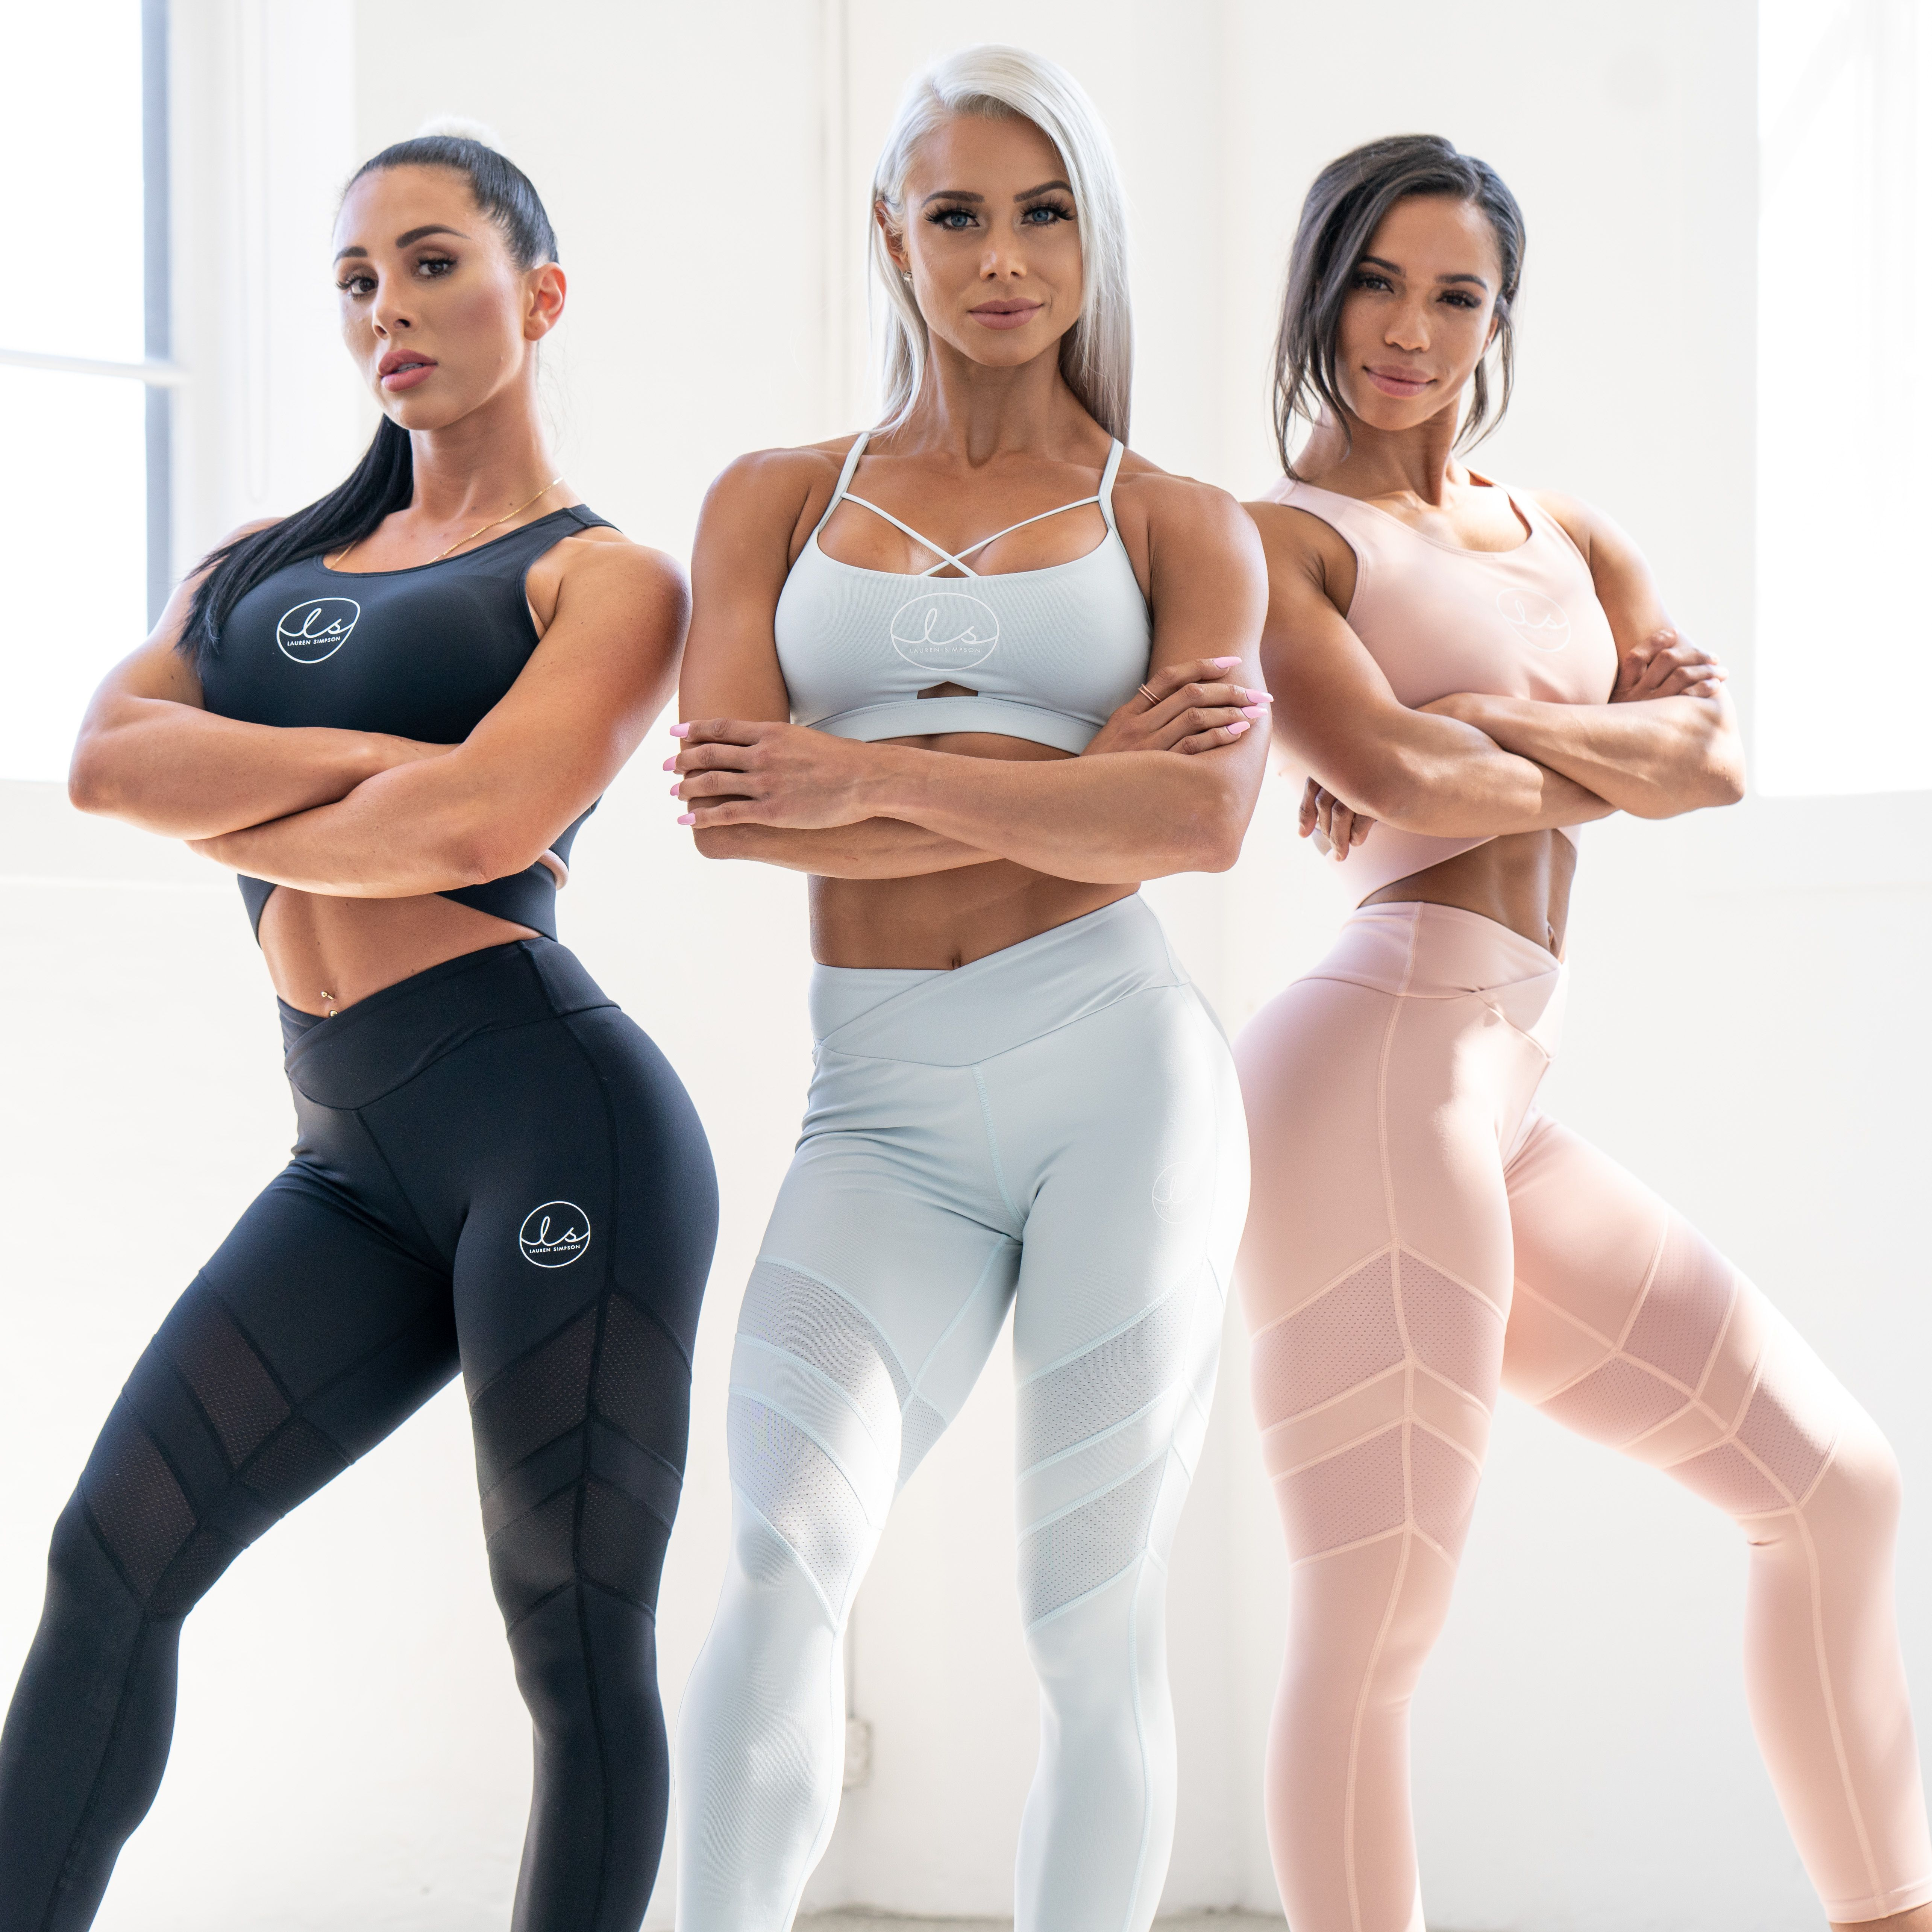 Gening Spring And Summer Workout Clothes Tops Women's Backless Sexy Fashion Sports Running Thin Net Red Yoga Suits